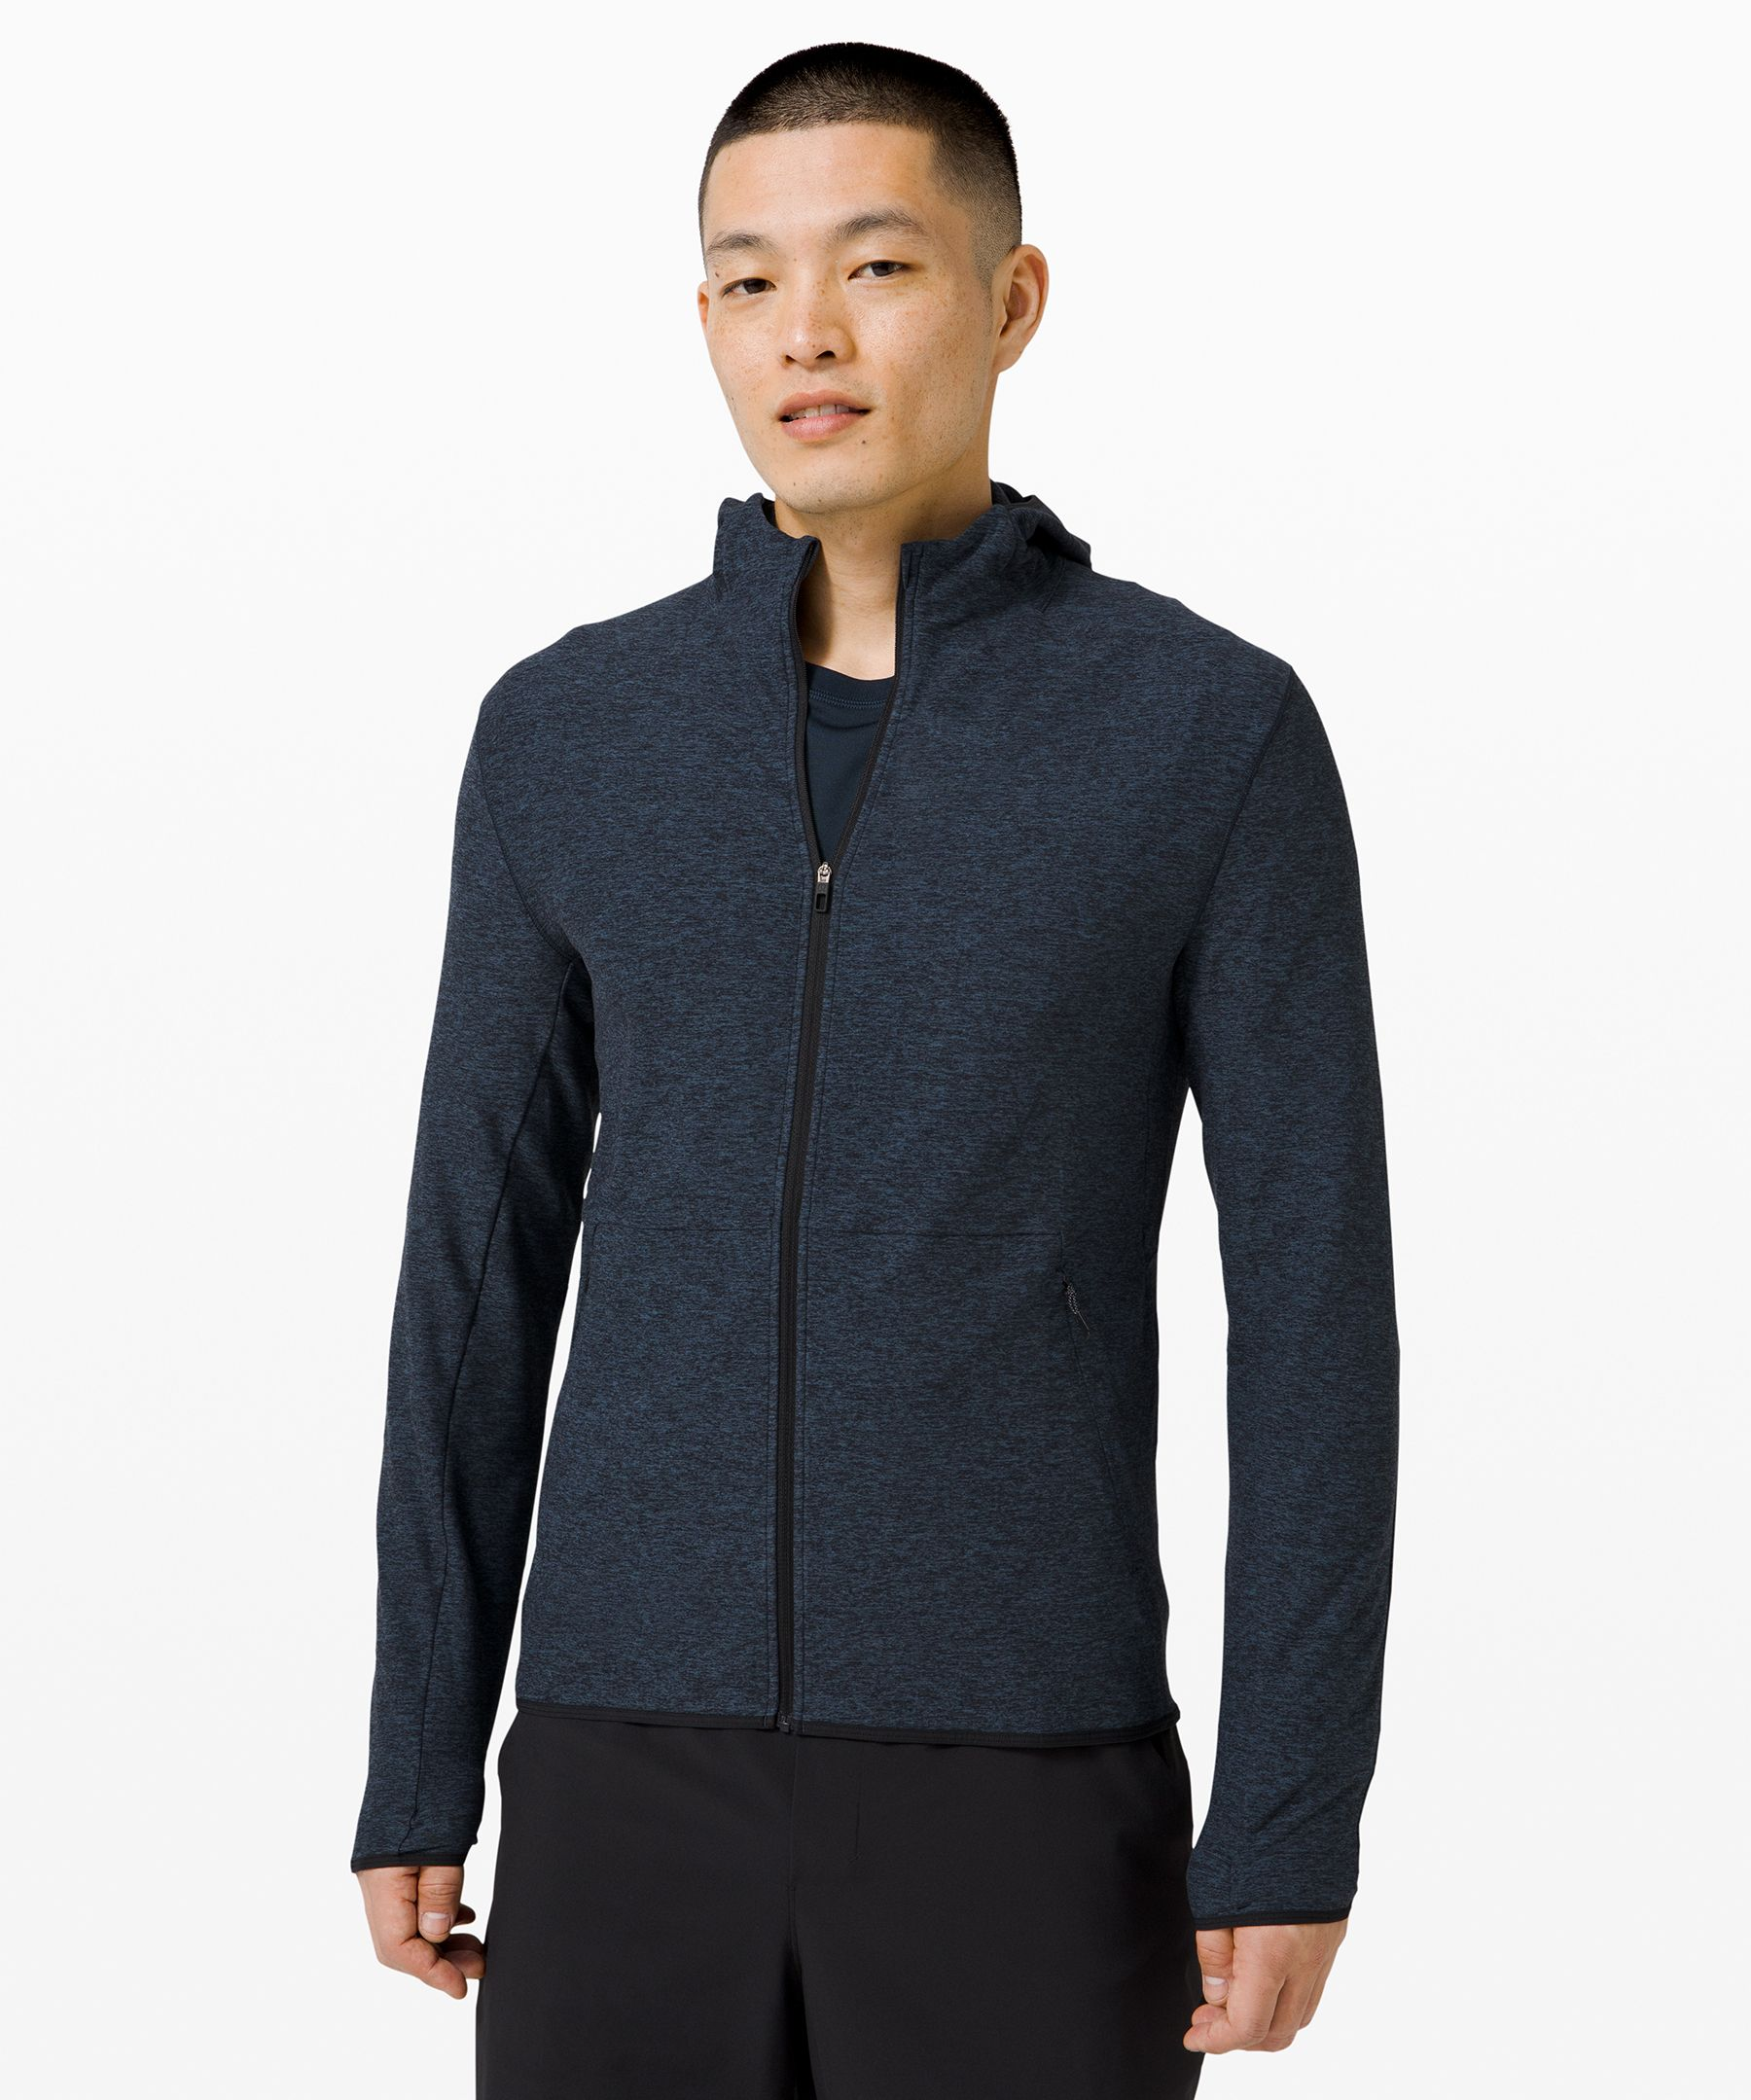 Stay warm and on the radar as you power through late-night runs. This top offers the perfect blend of warmth, breathability, and reflectivity.